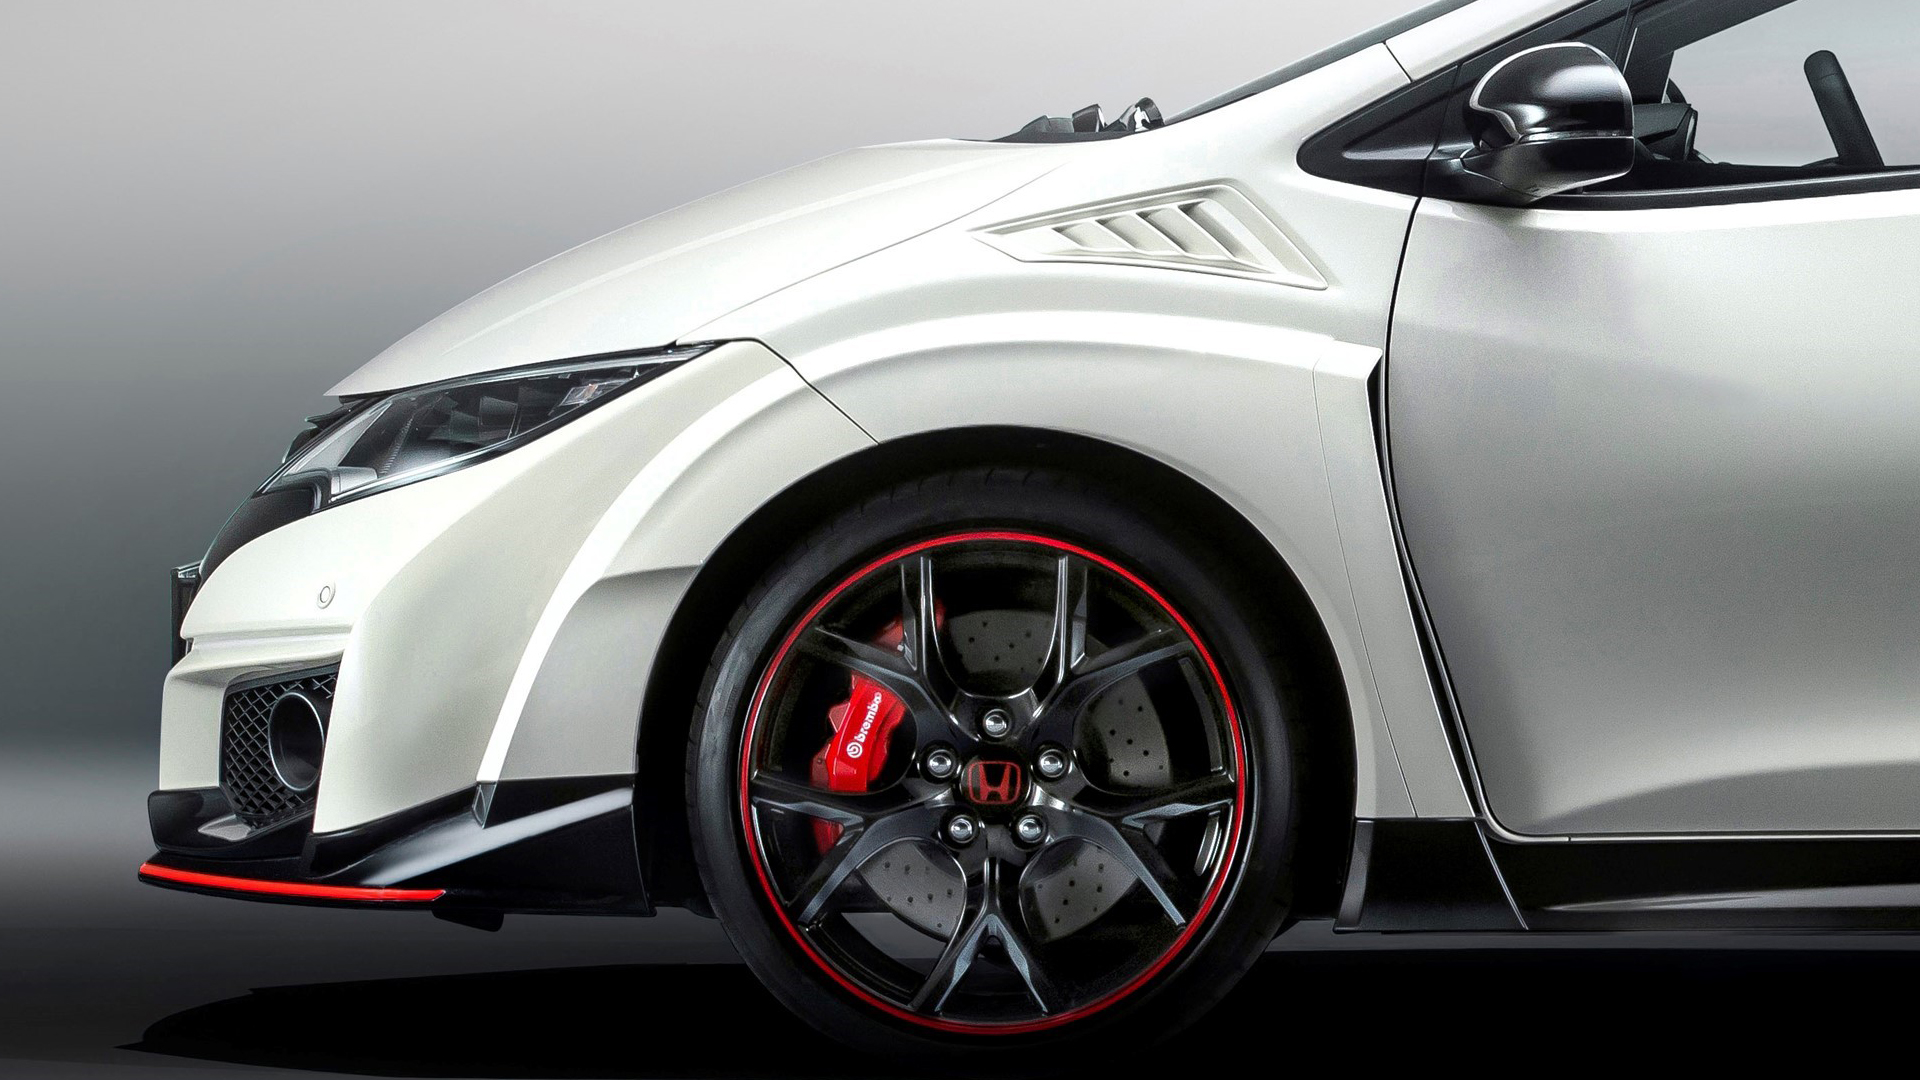 Honda Civic Type R - 2015 - wheel / jante